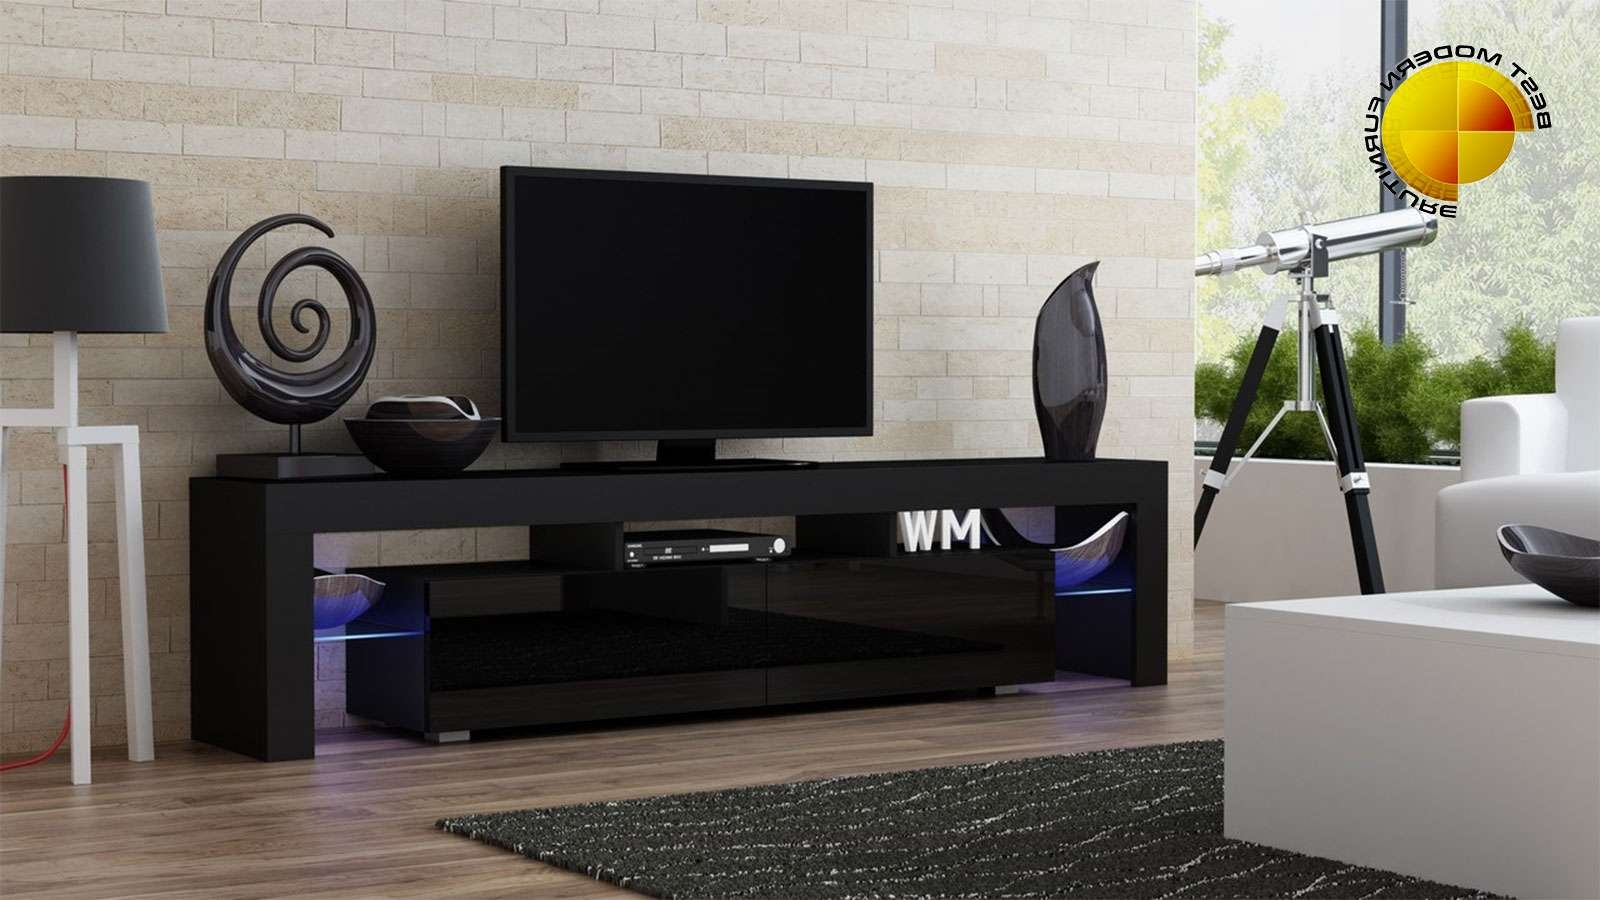 Modern Tv Stand 200cm High Gloss Cabinet Rgb Led Lights Black Unit Throughout Black Gloss Tv Stands (View 6 of 20)